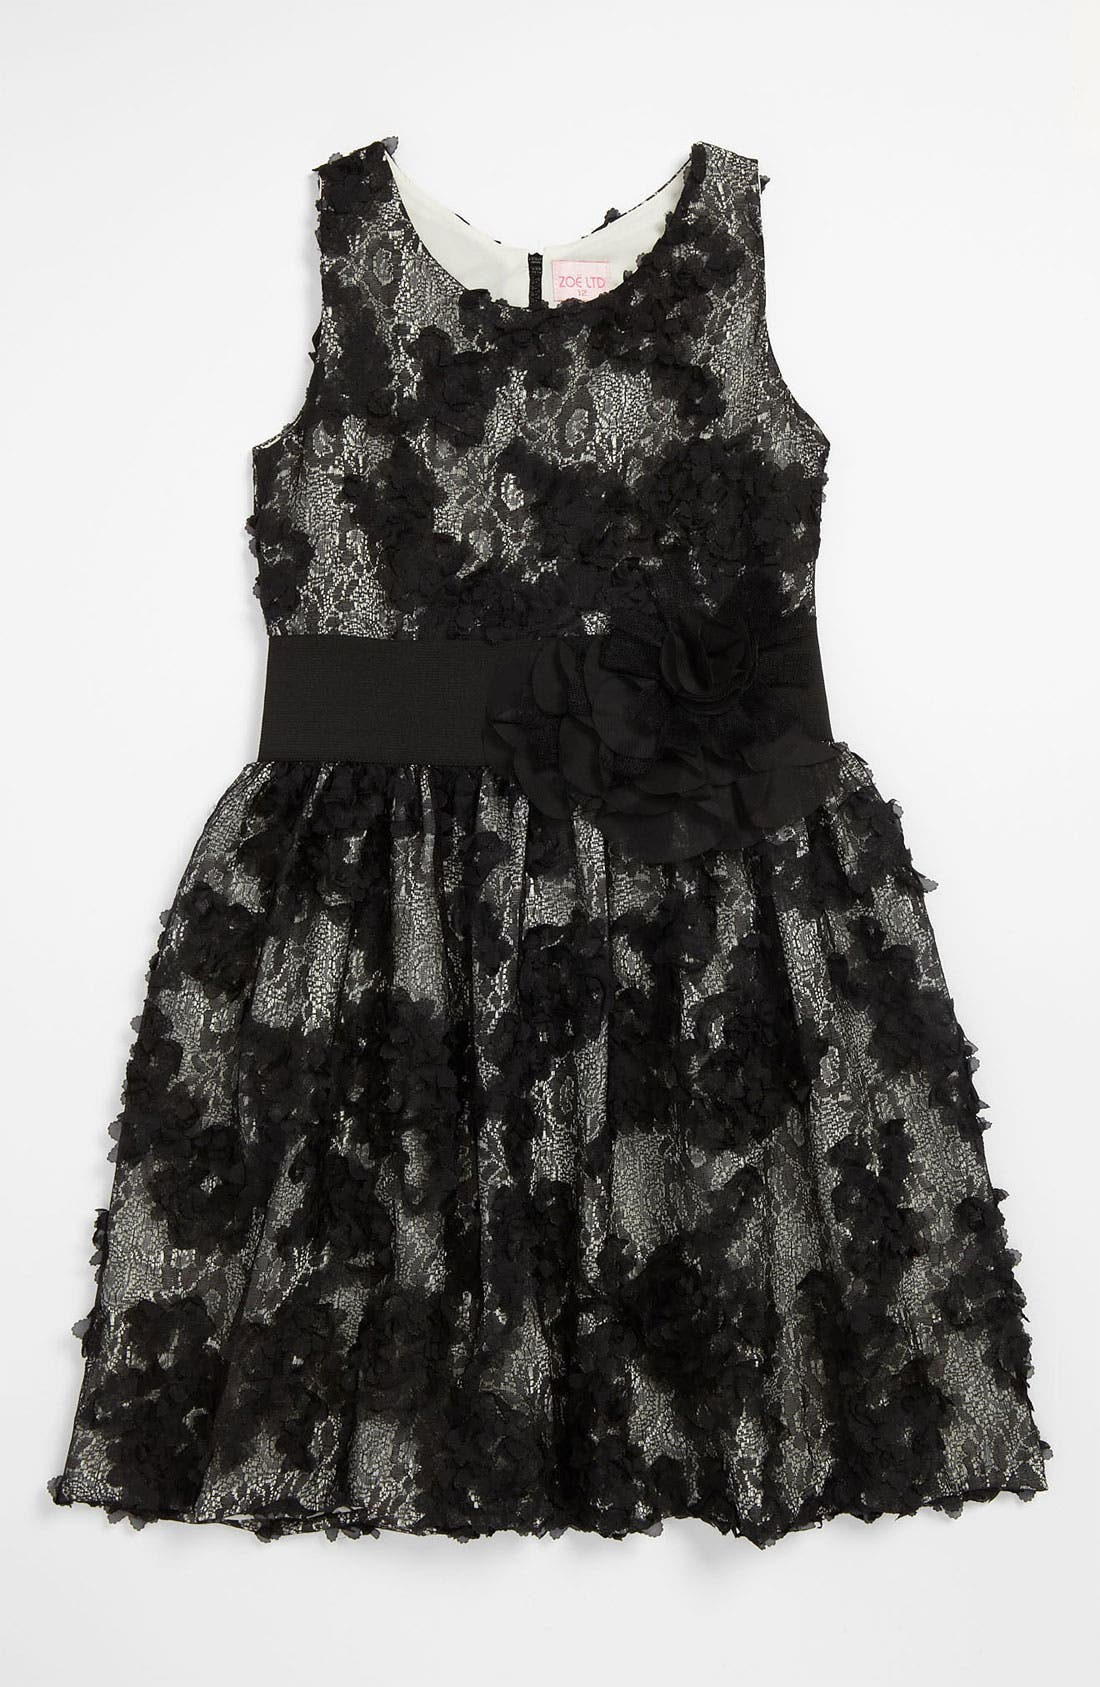 Alternate Image 1 Selected - Zoe Ltd Textured Lace Dress (Big Girls)